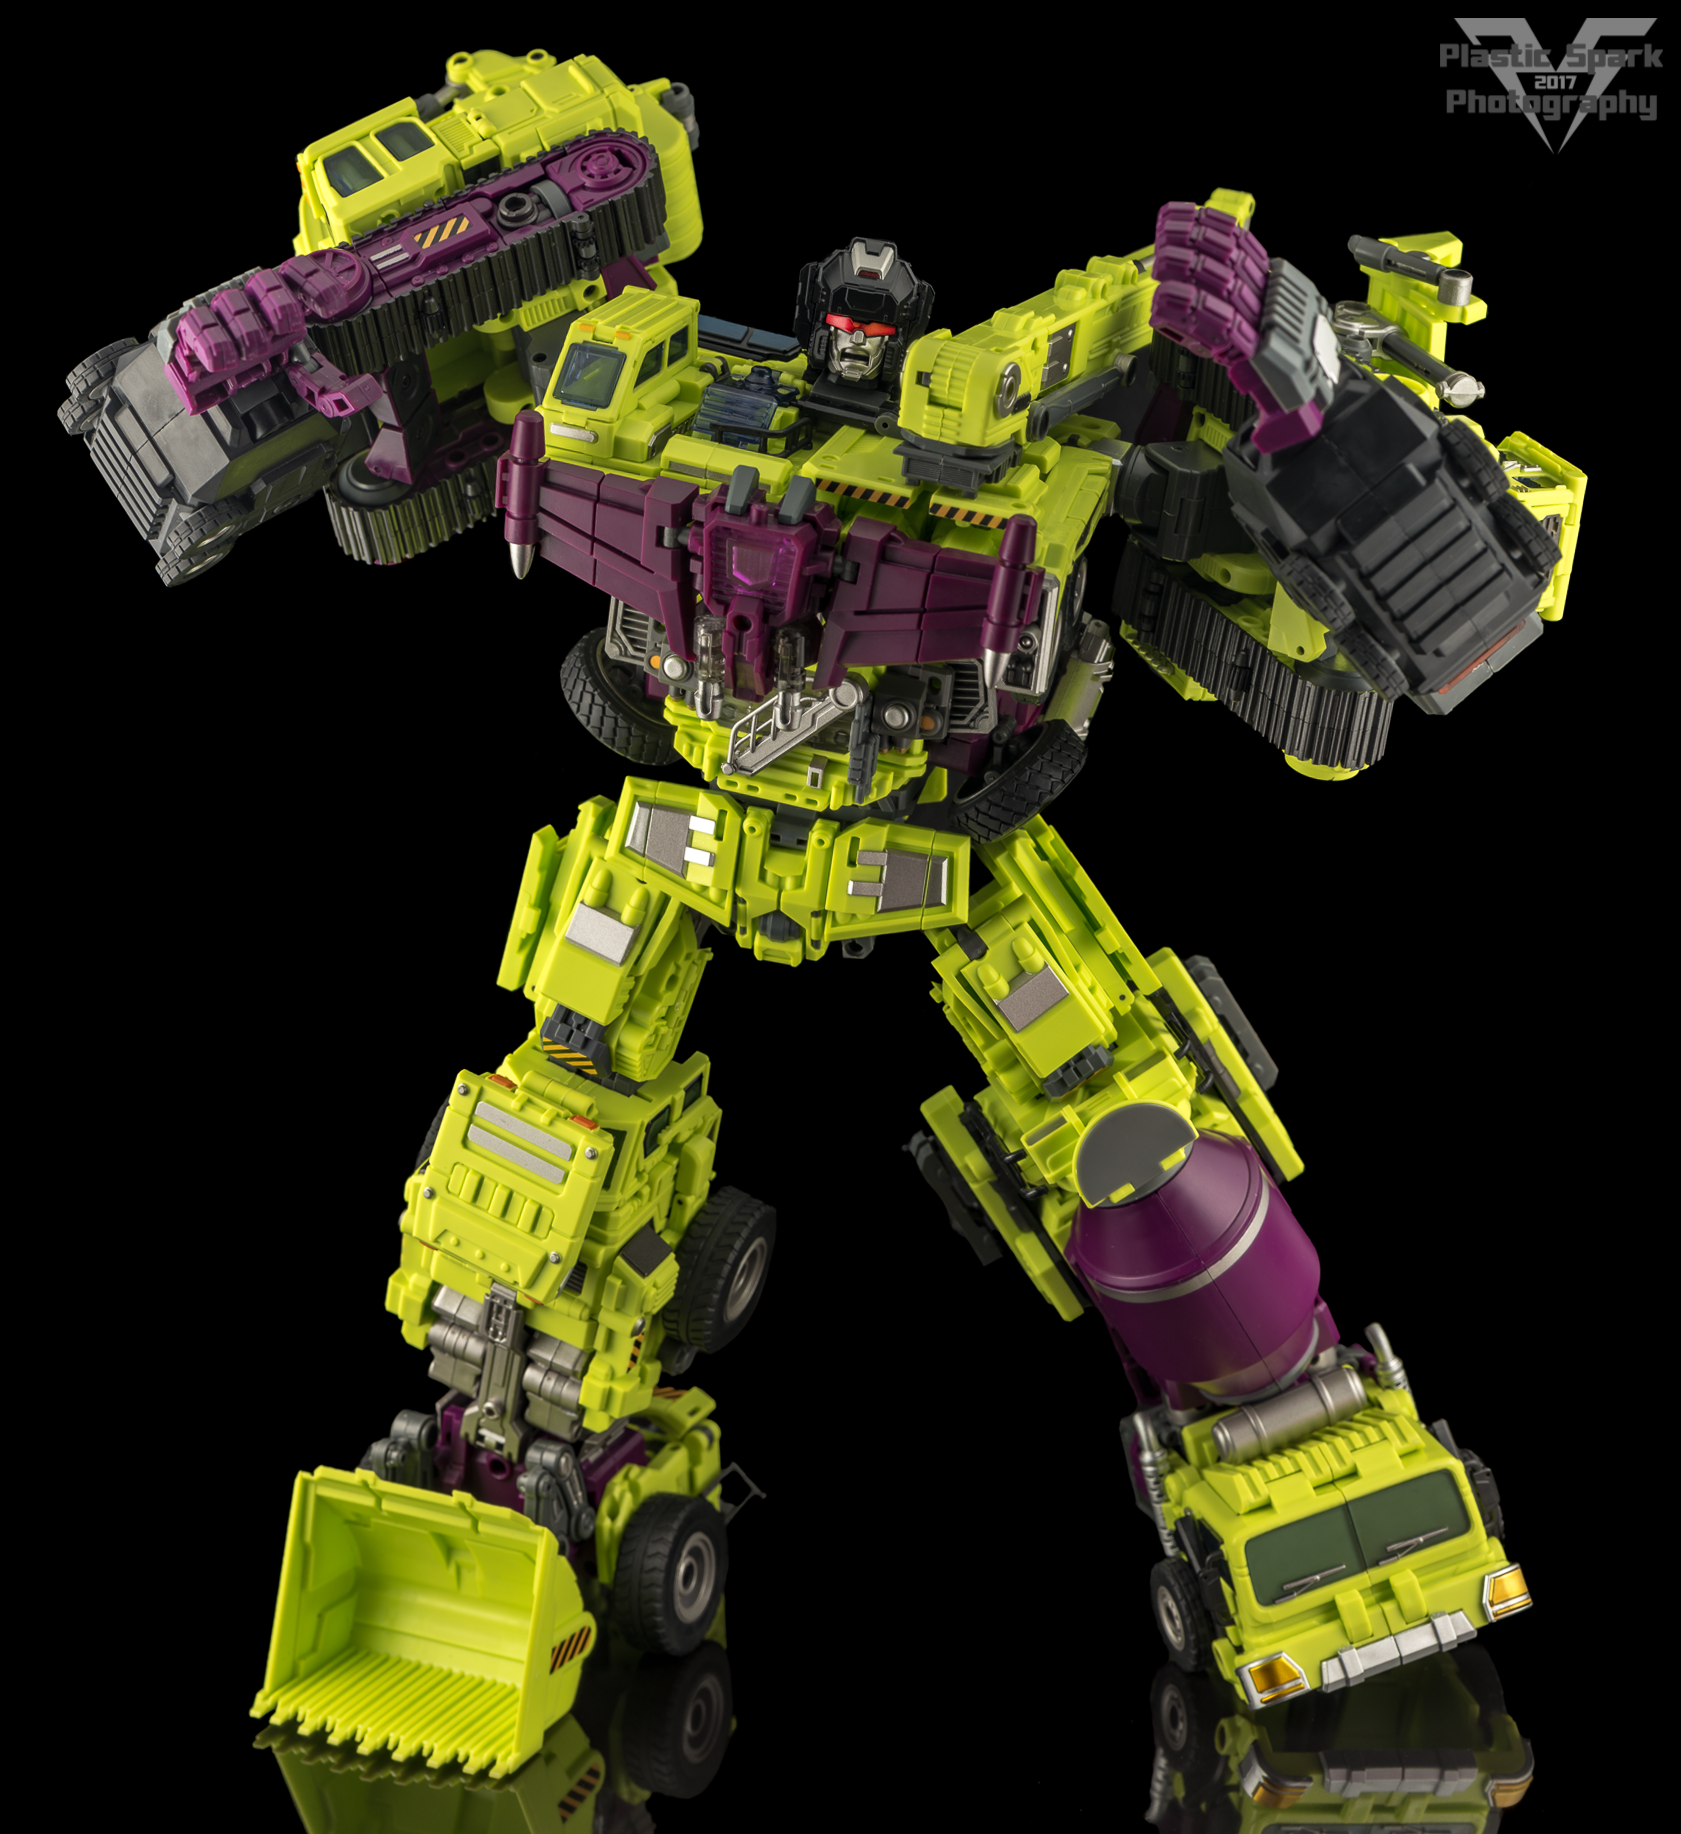 Generation-Toy-Gravity-Builder-(27-of-34).png